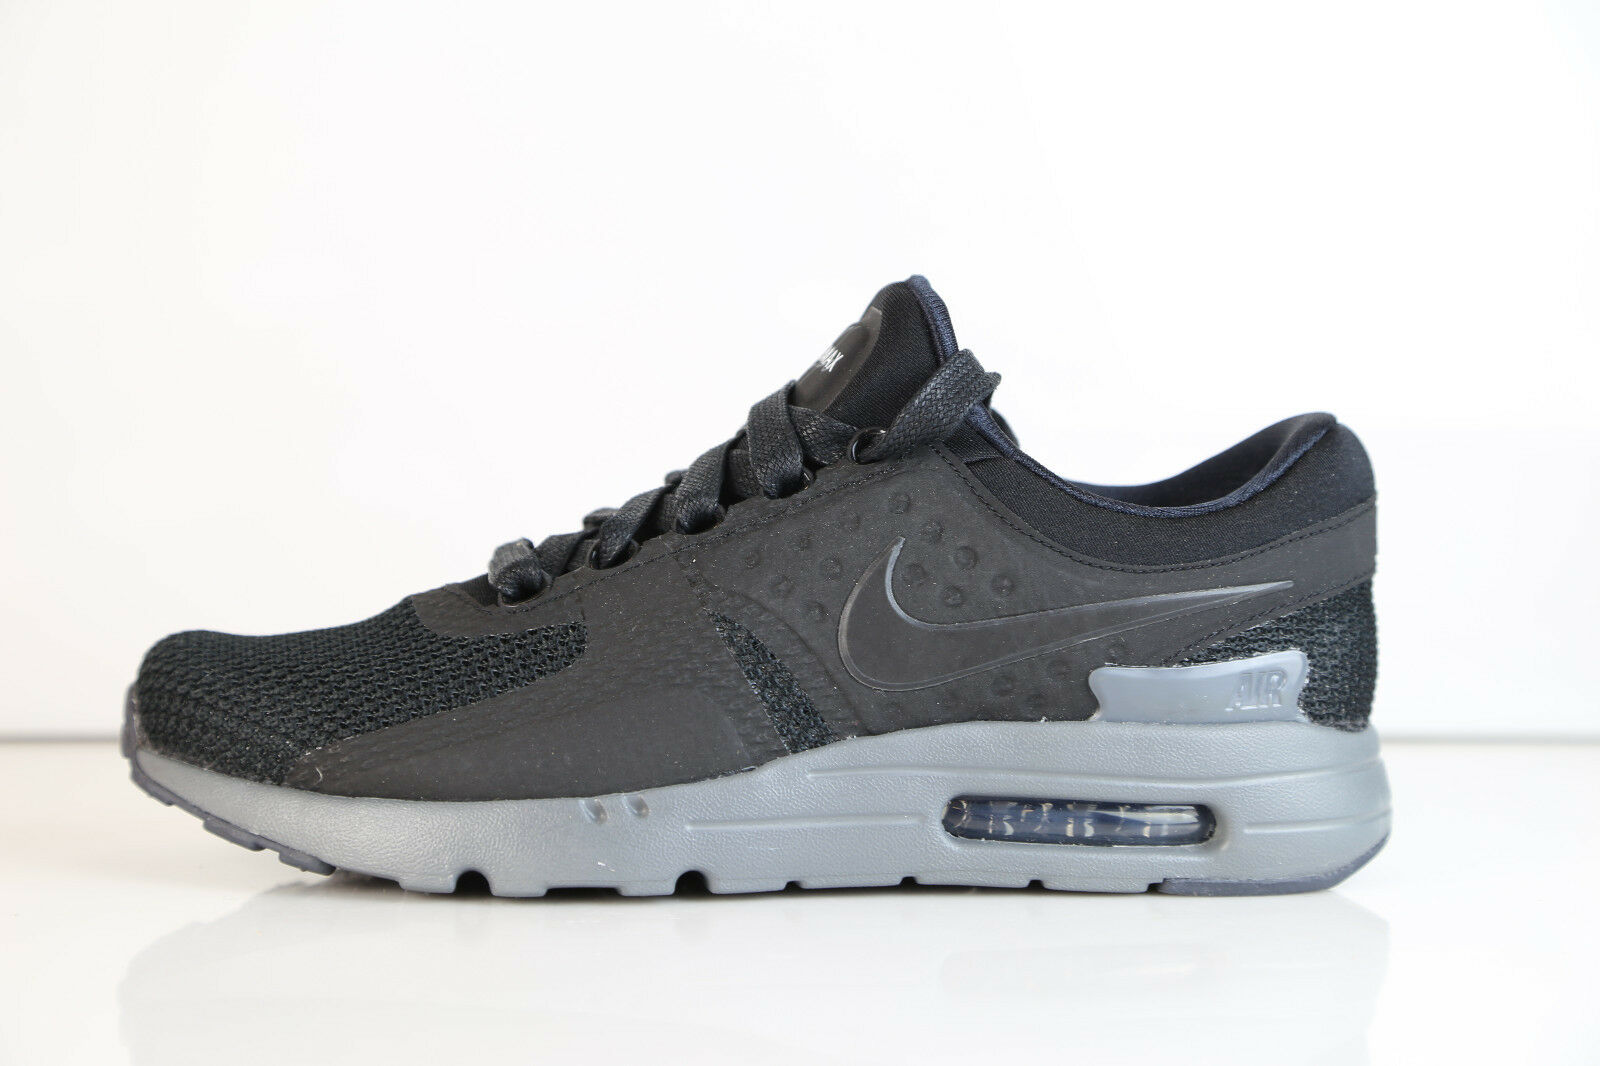 e3eb9a846f Nike Max Zero Black Anthracite 789695-001 8-10 1 90 3 QS Air ...